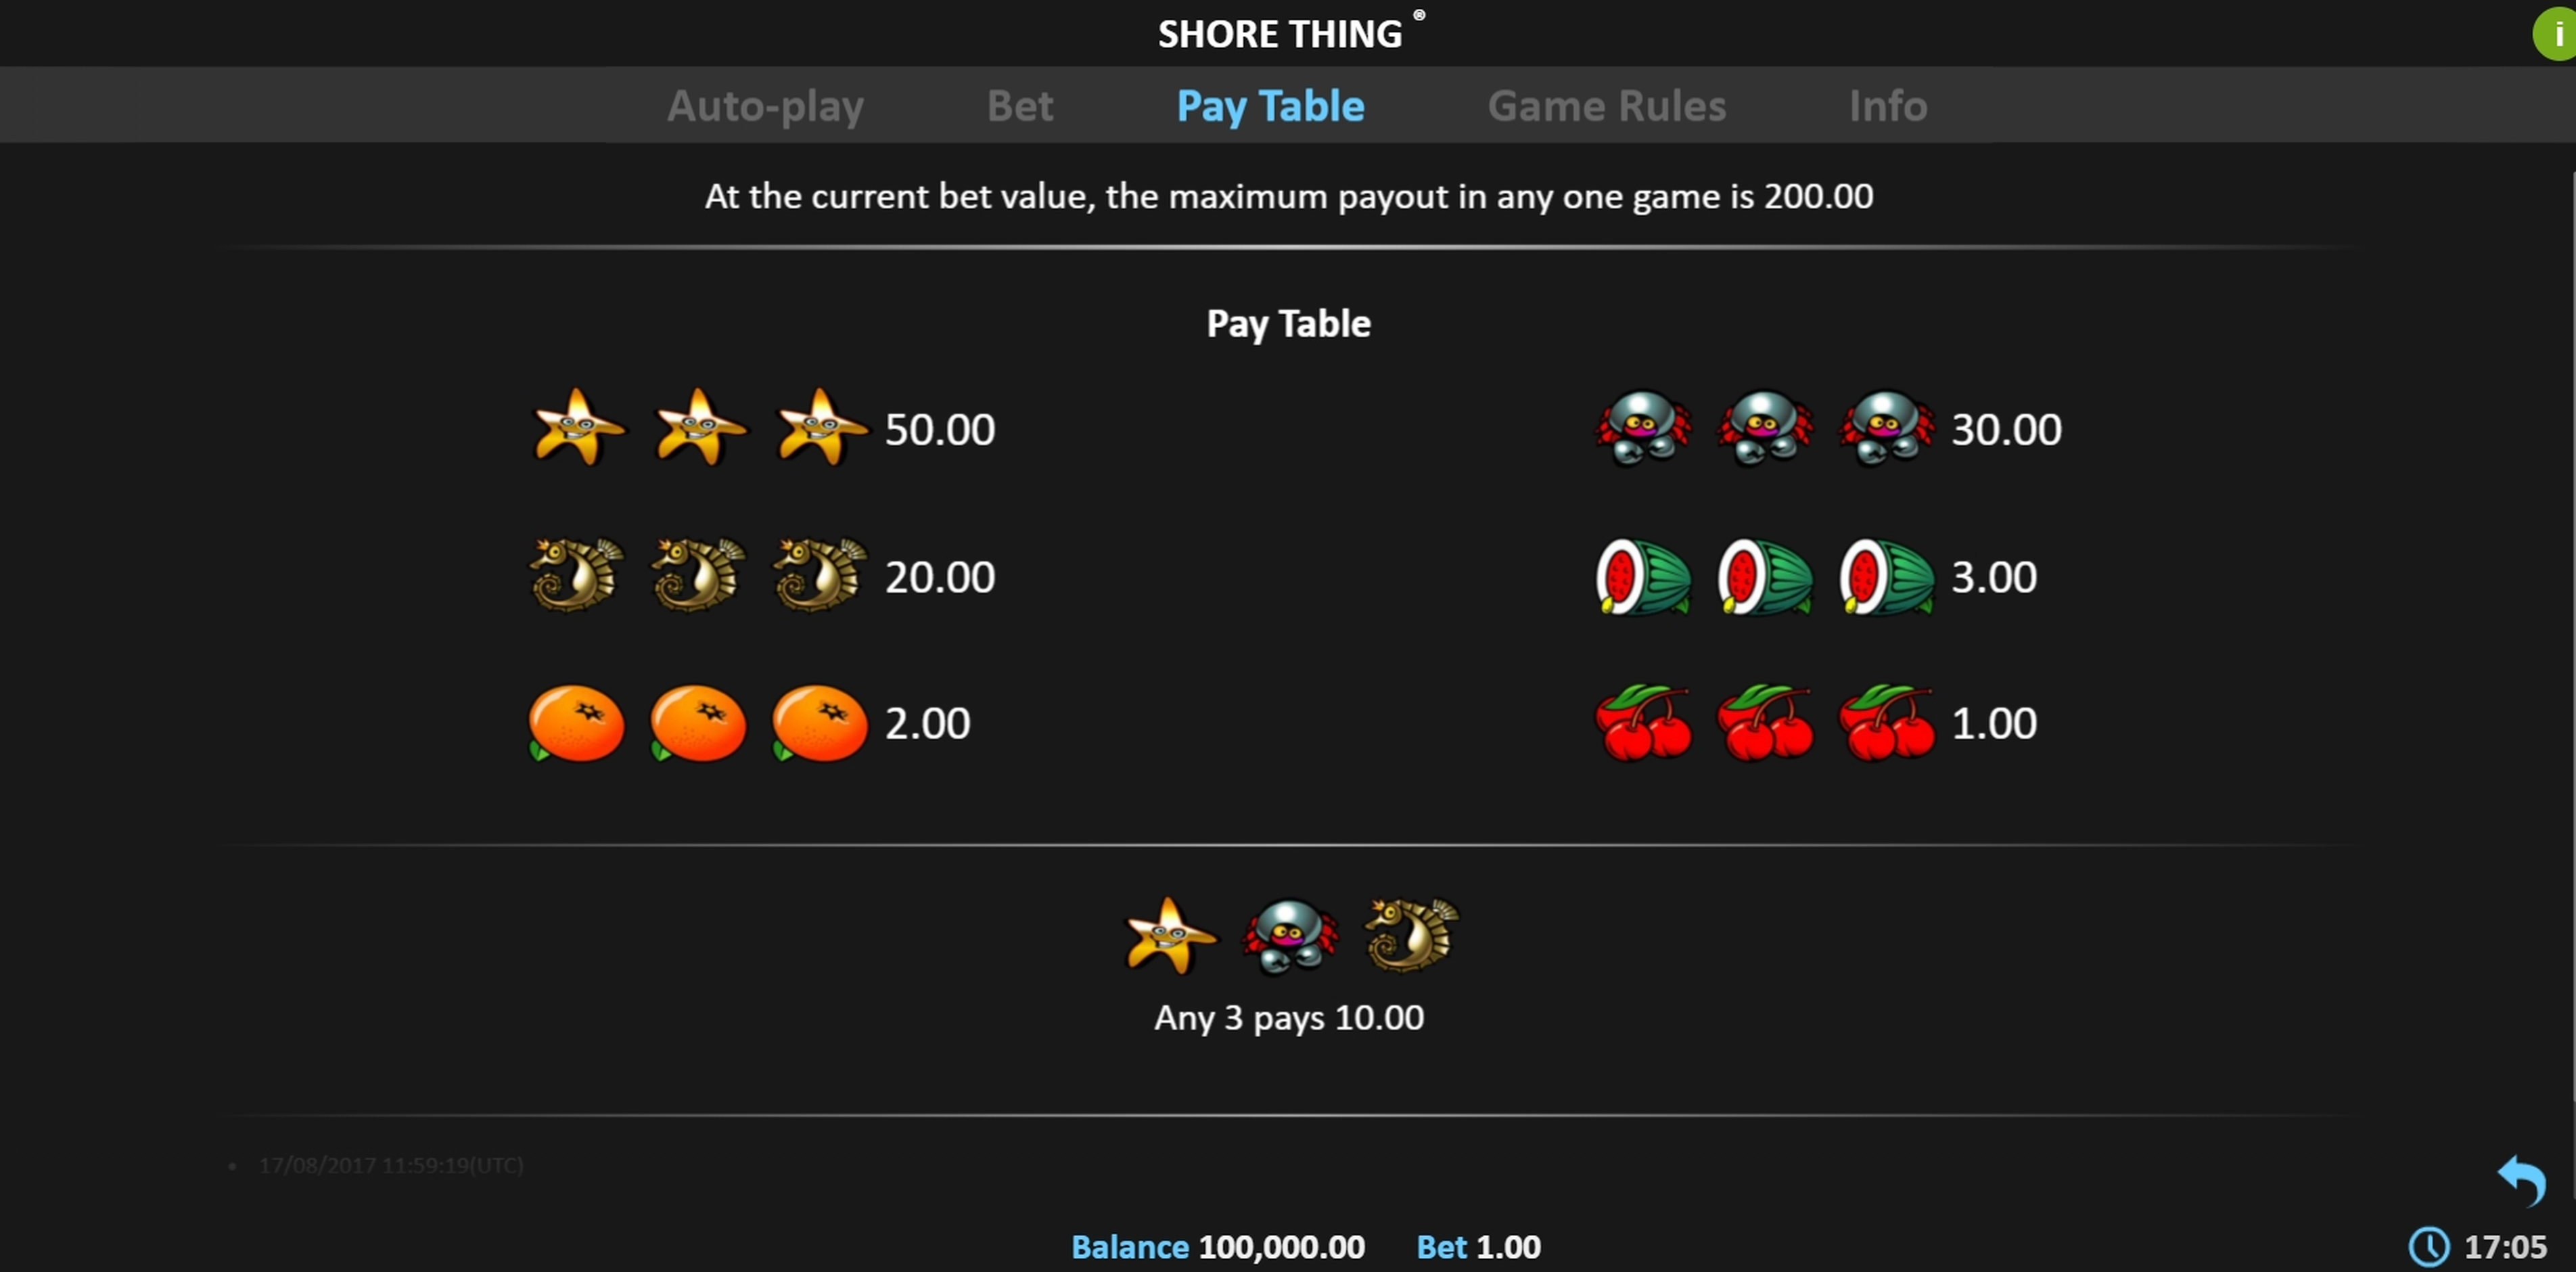 Info of Shore Thing Pull Tab Slot Game by Realistic